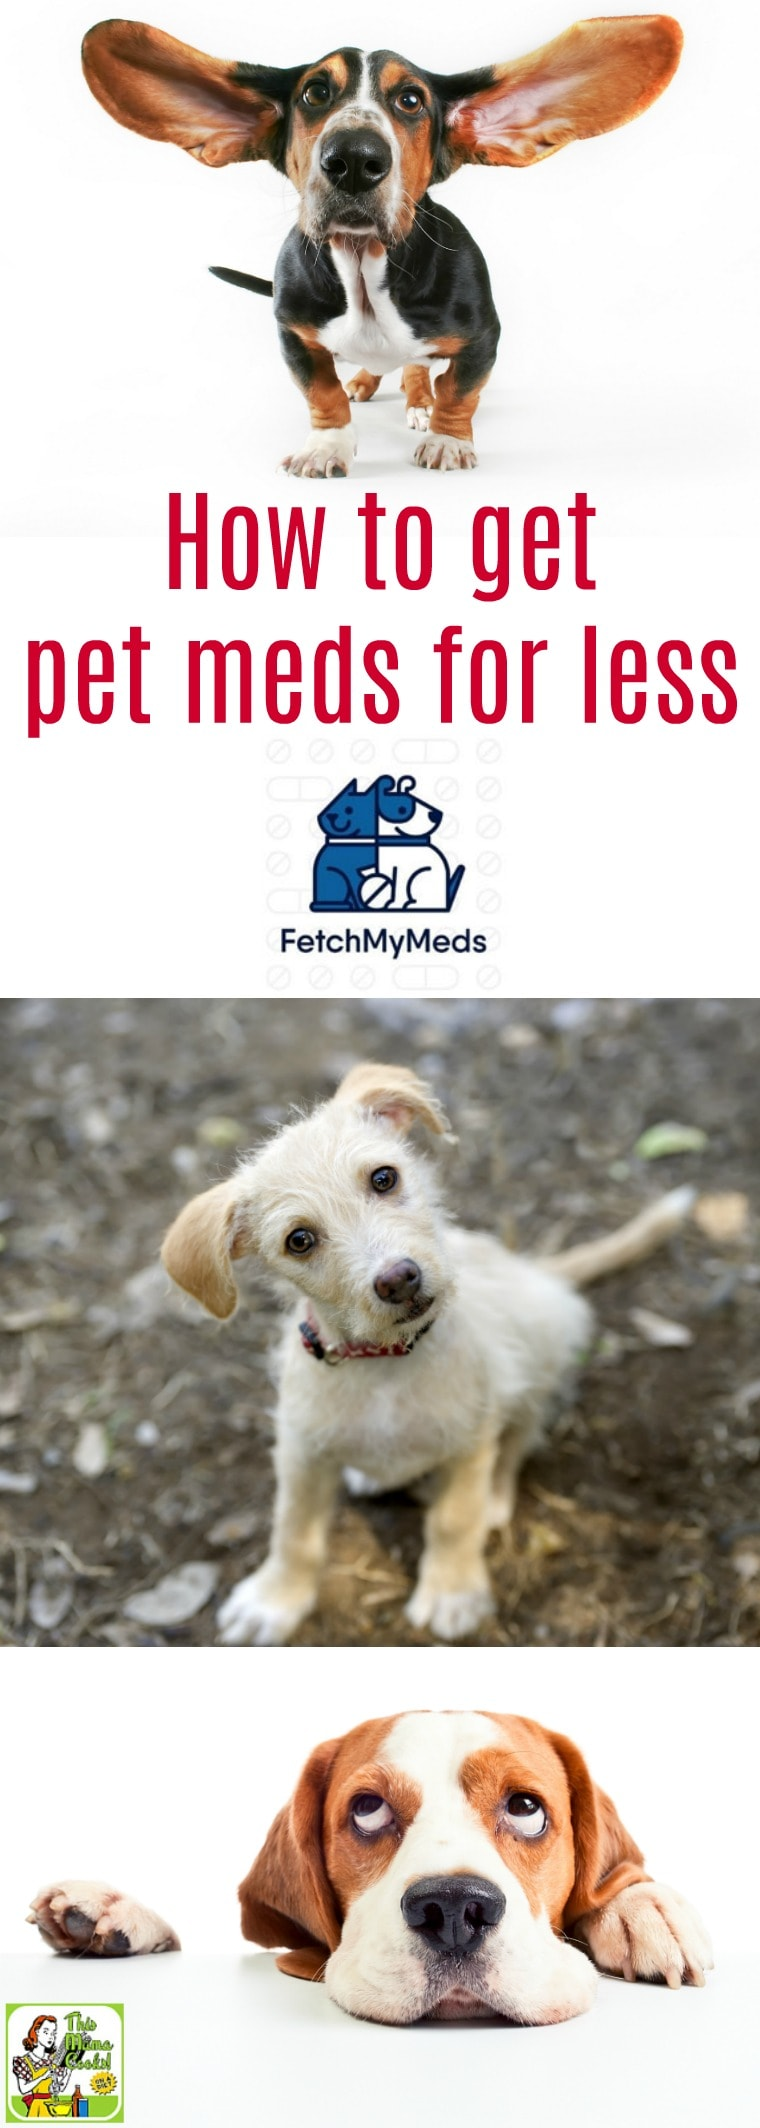 Want to learn how to get pet meds for less? Check out Fetch My Meds, a great program for discount pet meds. It\'s a pet prescription discount card can help you save on pet meds. Free, easy to use and takes only a couple of minutes to sign up. #pets #petmeds #petmedsforless #discountpetmeds #petRx #dogs #cats #lovedogs #lovecats